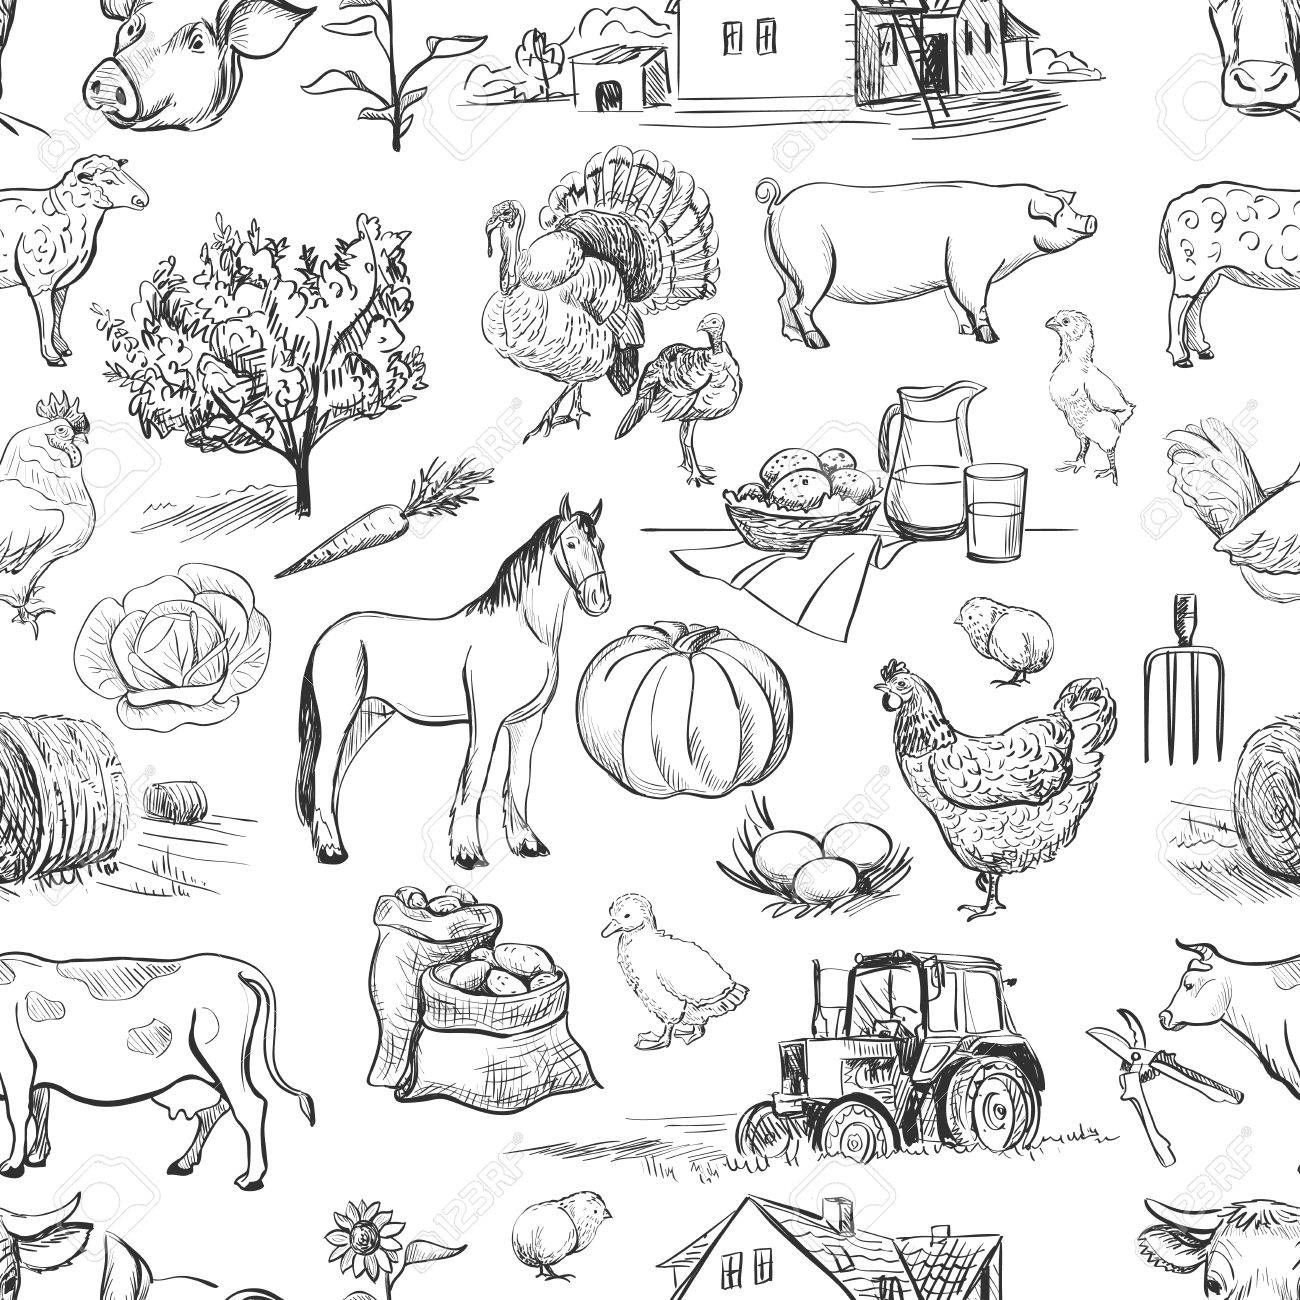 seamless pattern with farm related items with cow, goat, pig, chicken, rooster, horse, turkey, tractor, rakes, sunflowers, cabbage, carrots, eggs, milk, haystack - 46093287